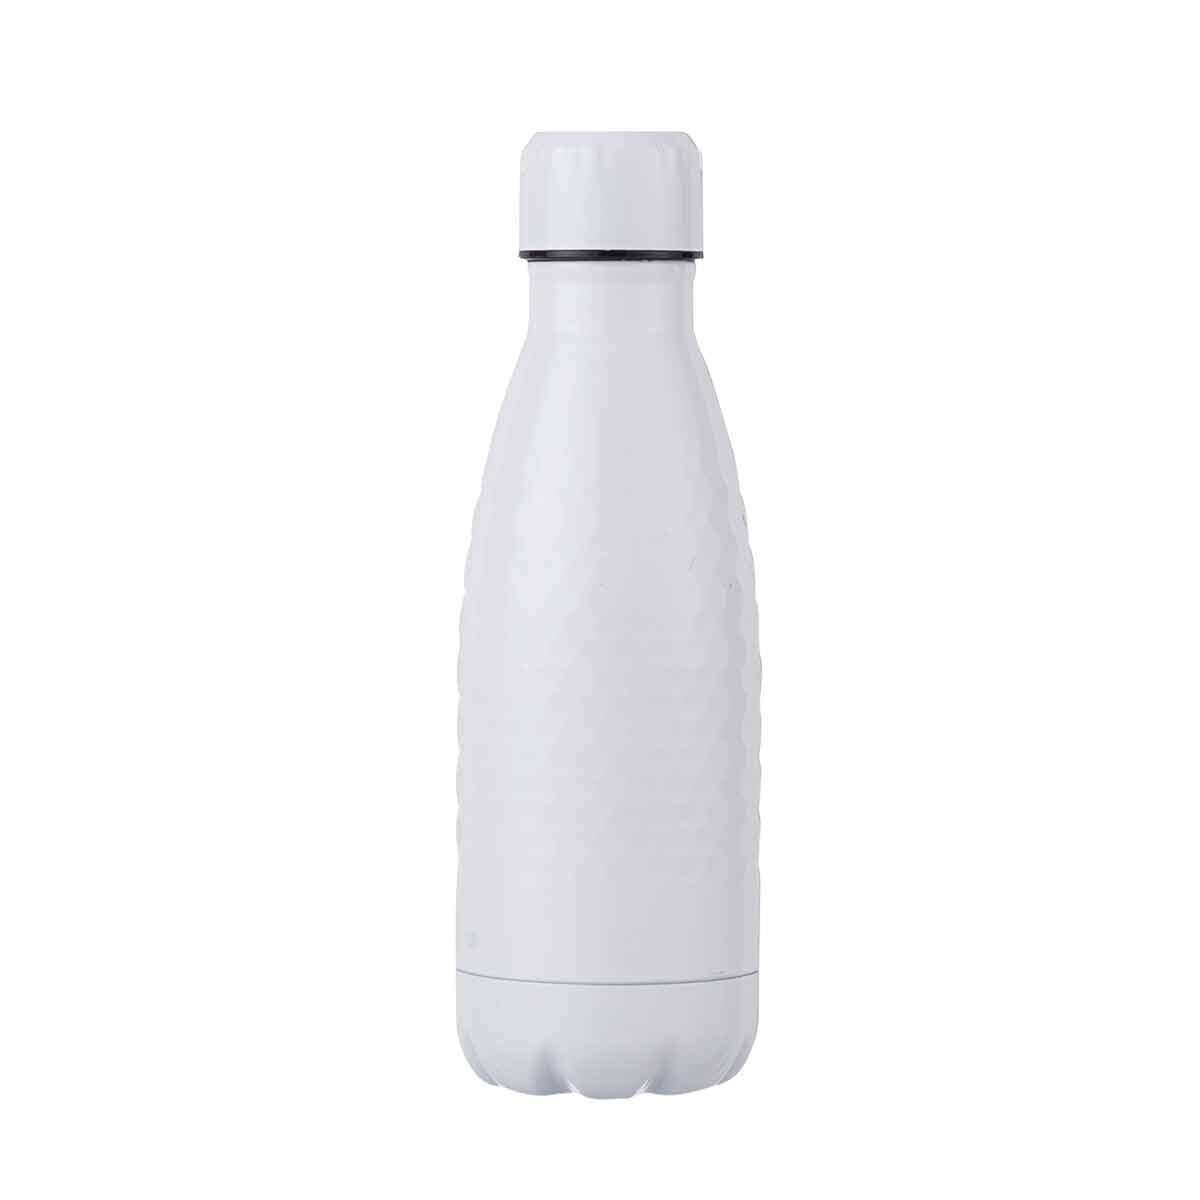 B and Co Honeycomb Stainless Steel Bottle 350ml White